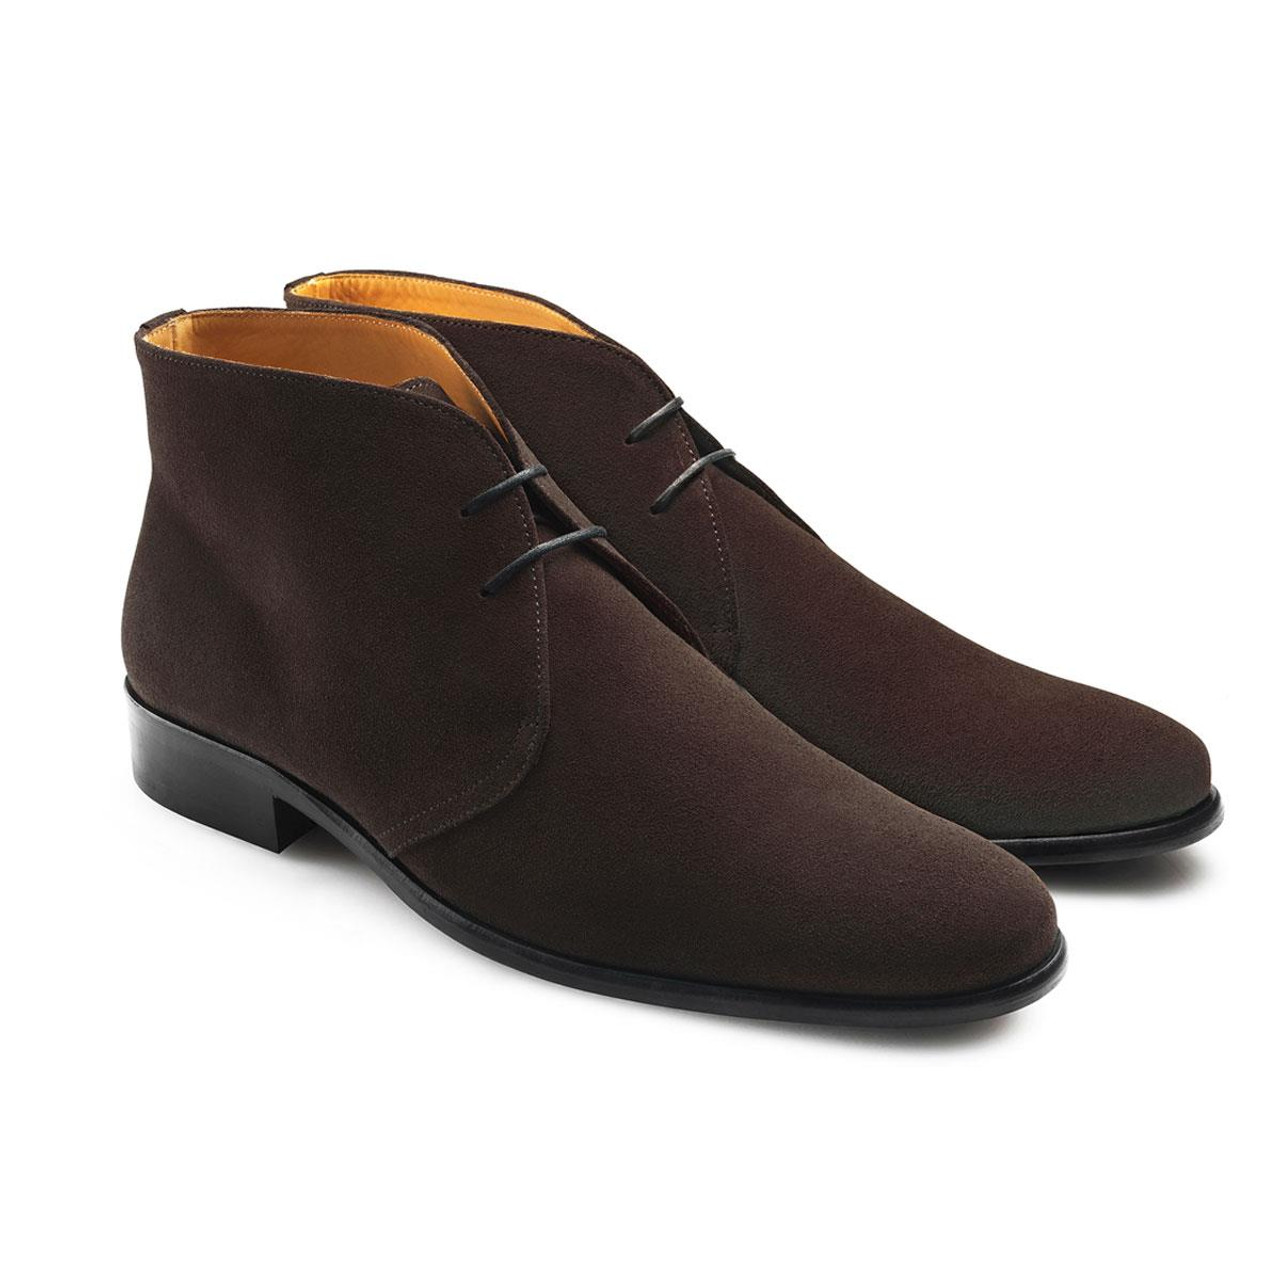 Fairfax & Favor Mens Desert Boot